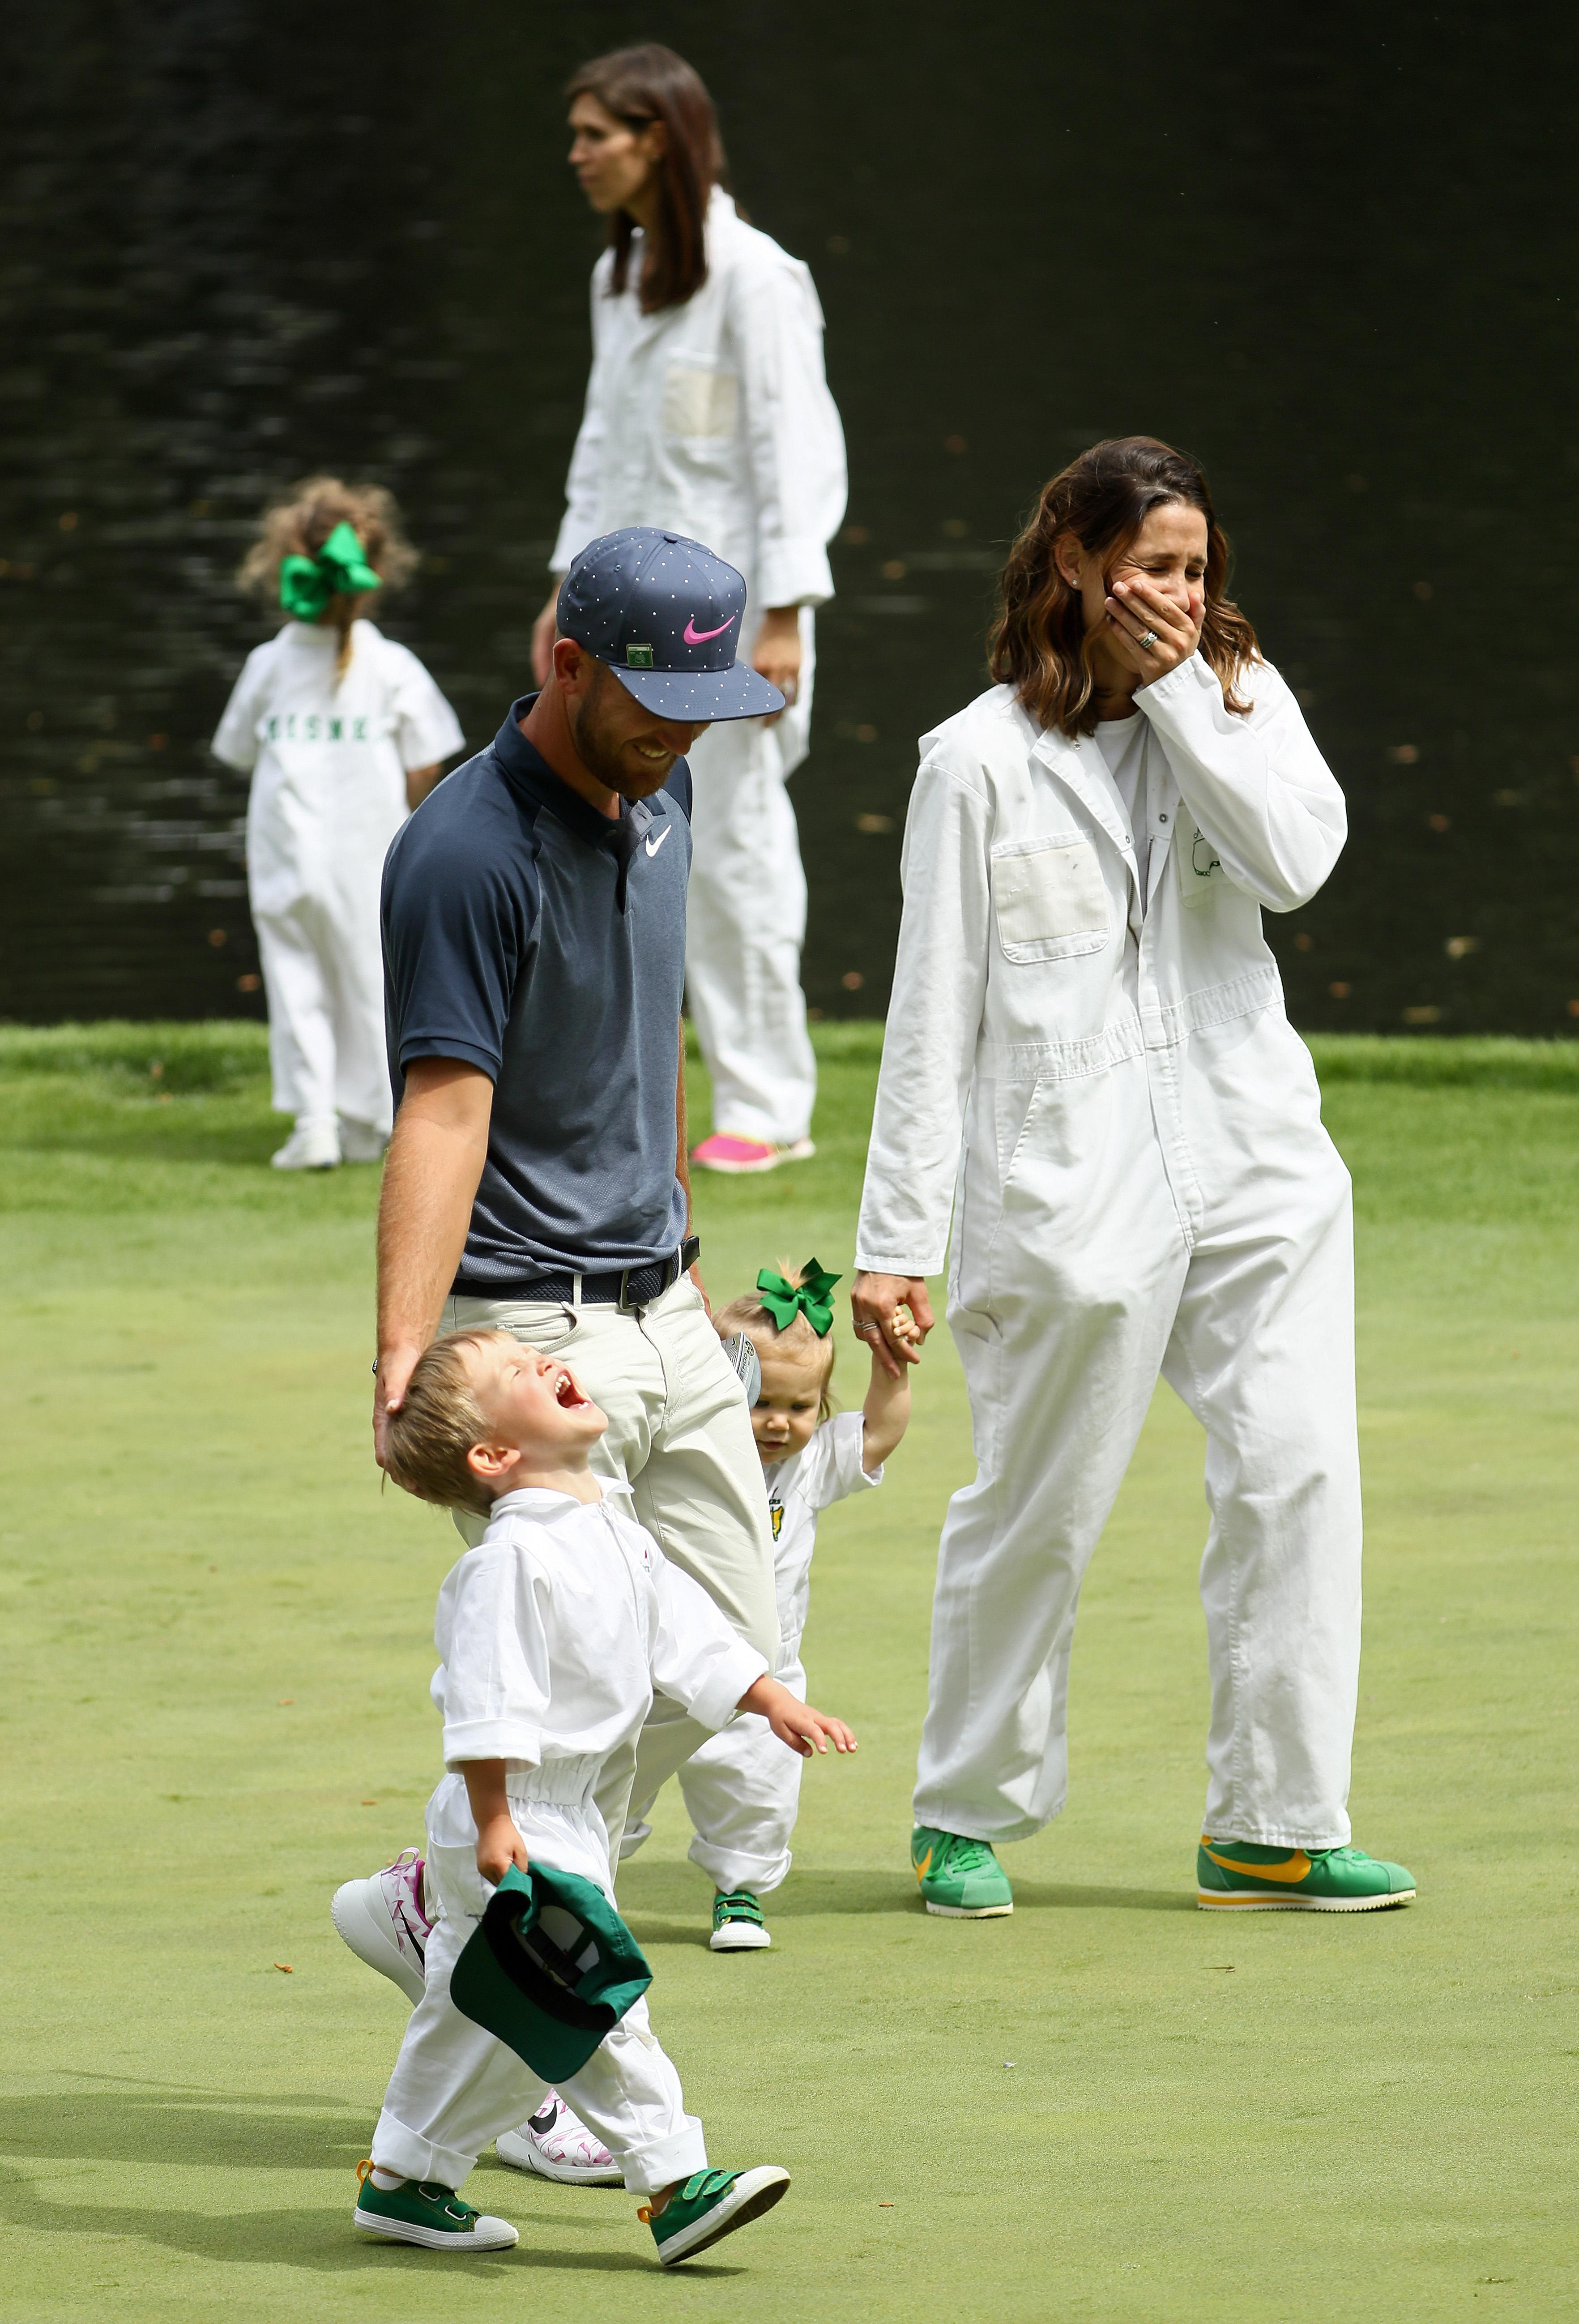 Both children Wyatt and Collins were at the Par-3 competition in August this year